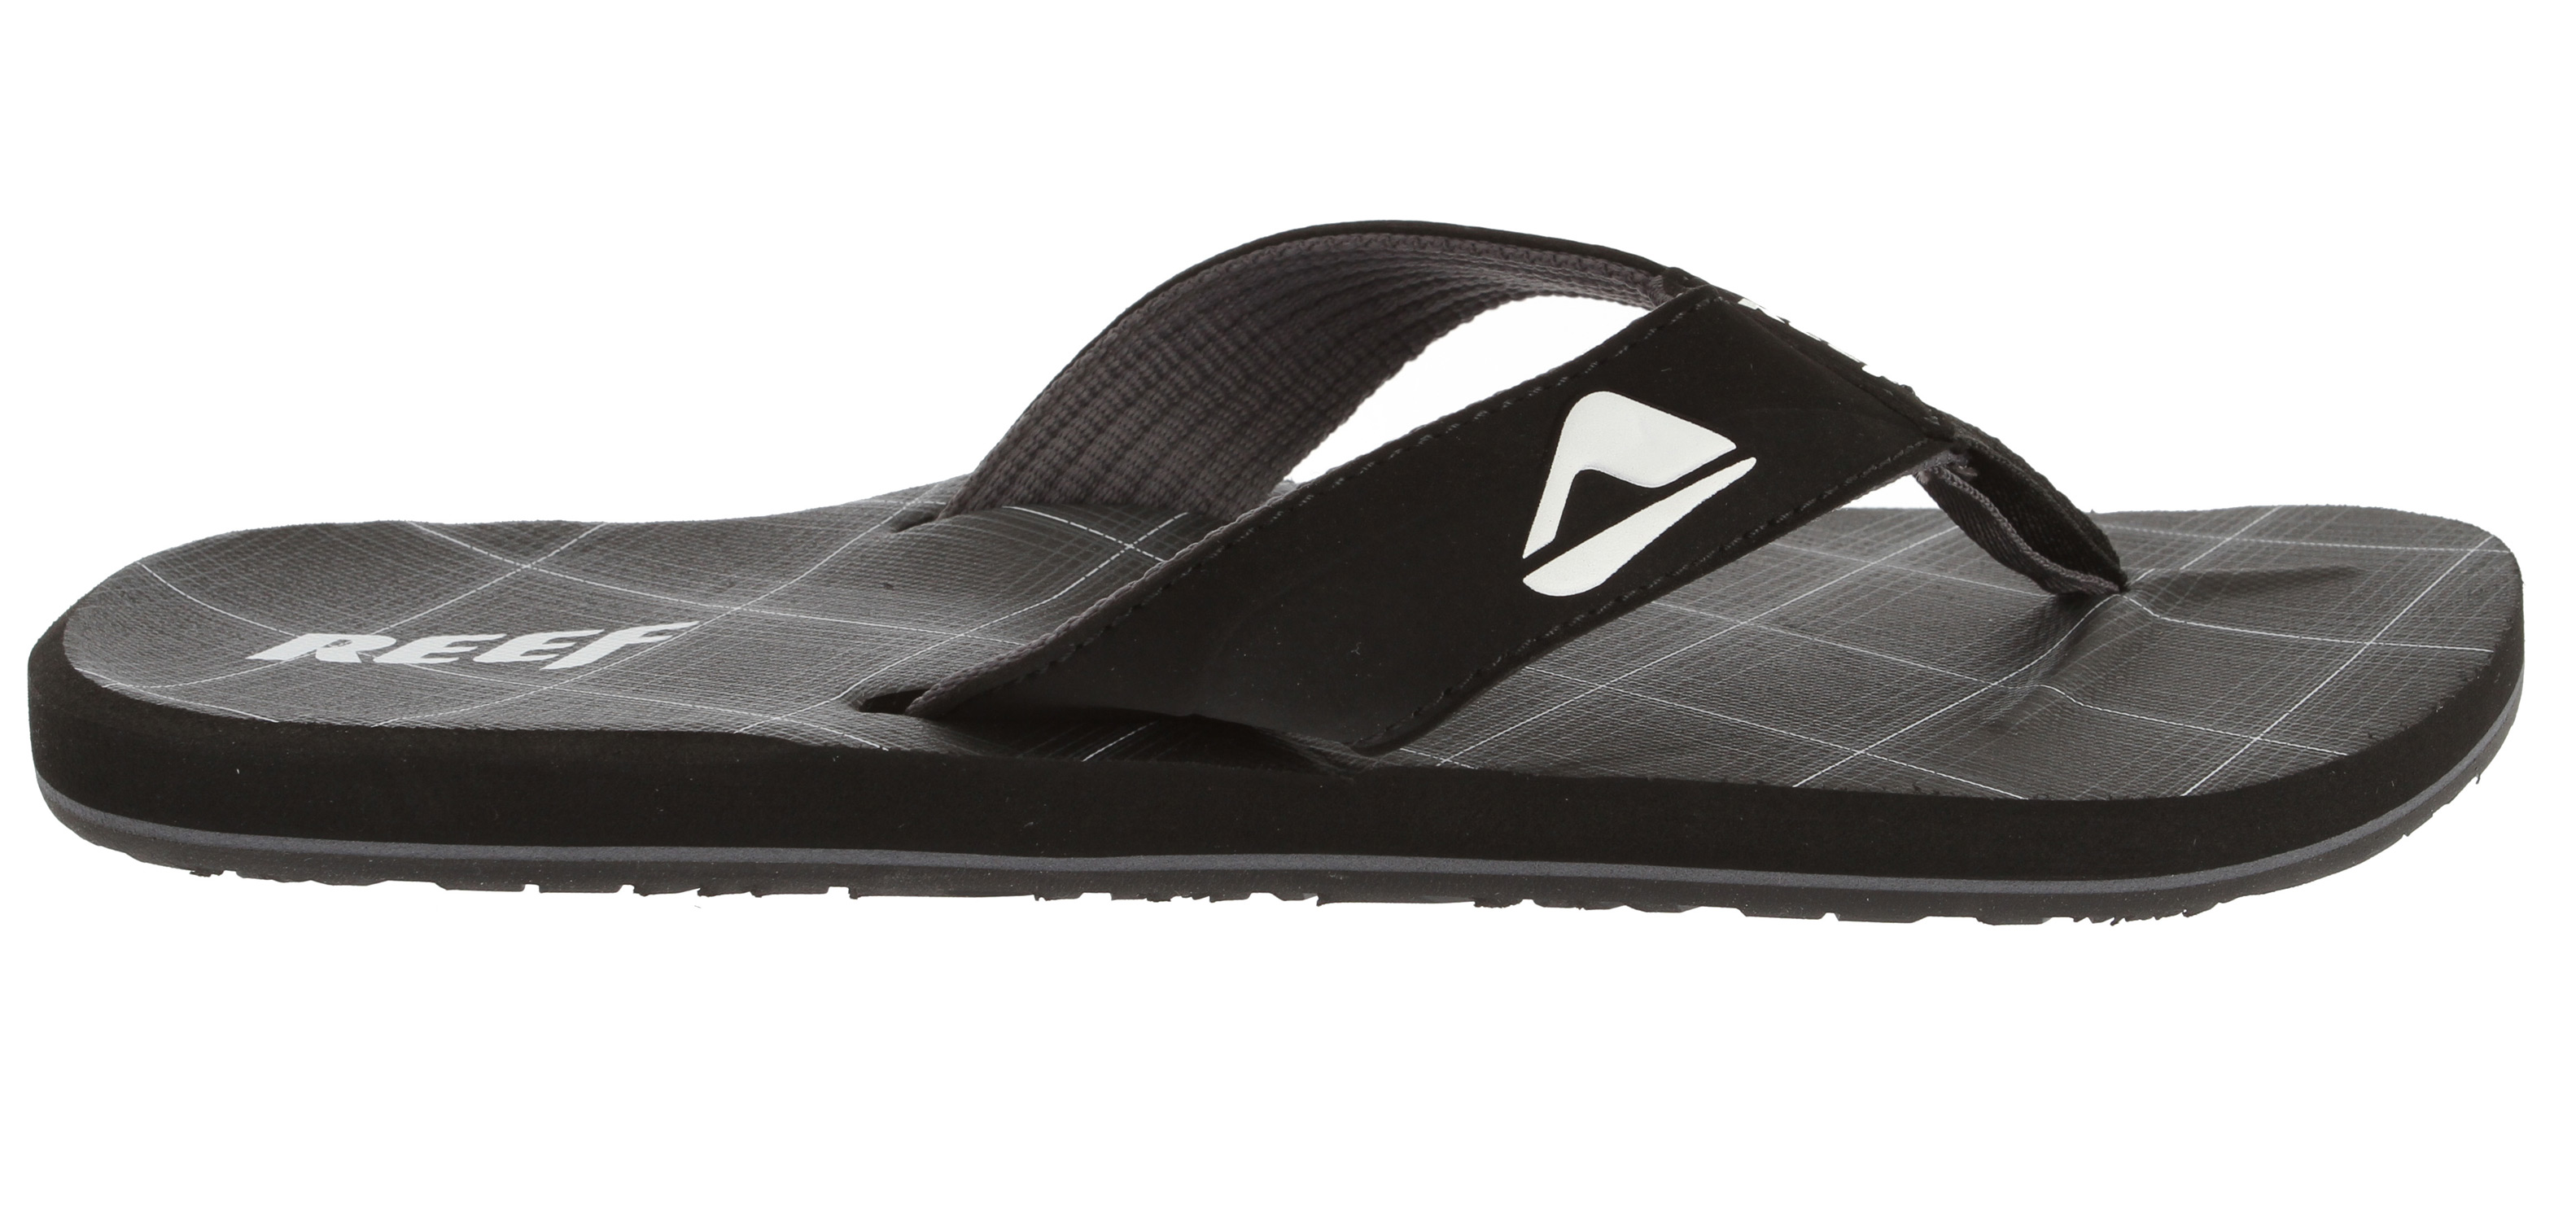 Surf From the beach to the Boulevard, the supreme comfort of the Reef HT Prints sandal will get you to your next destination in style and ease.Key Features of the Reef HT Prints Sandals: Soft, comfortable, water friendly synthetic nubuck upper Soft Reef polyester woven lining Contoured Eva footbed with anatomical arch support Grippy molded Reef rubber outsole - $20.95